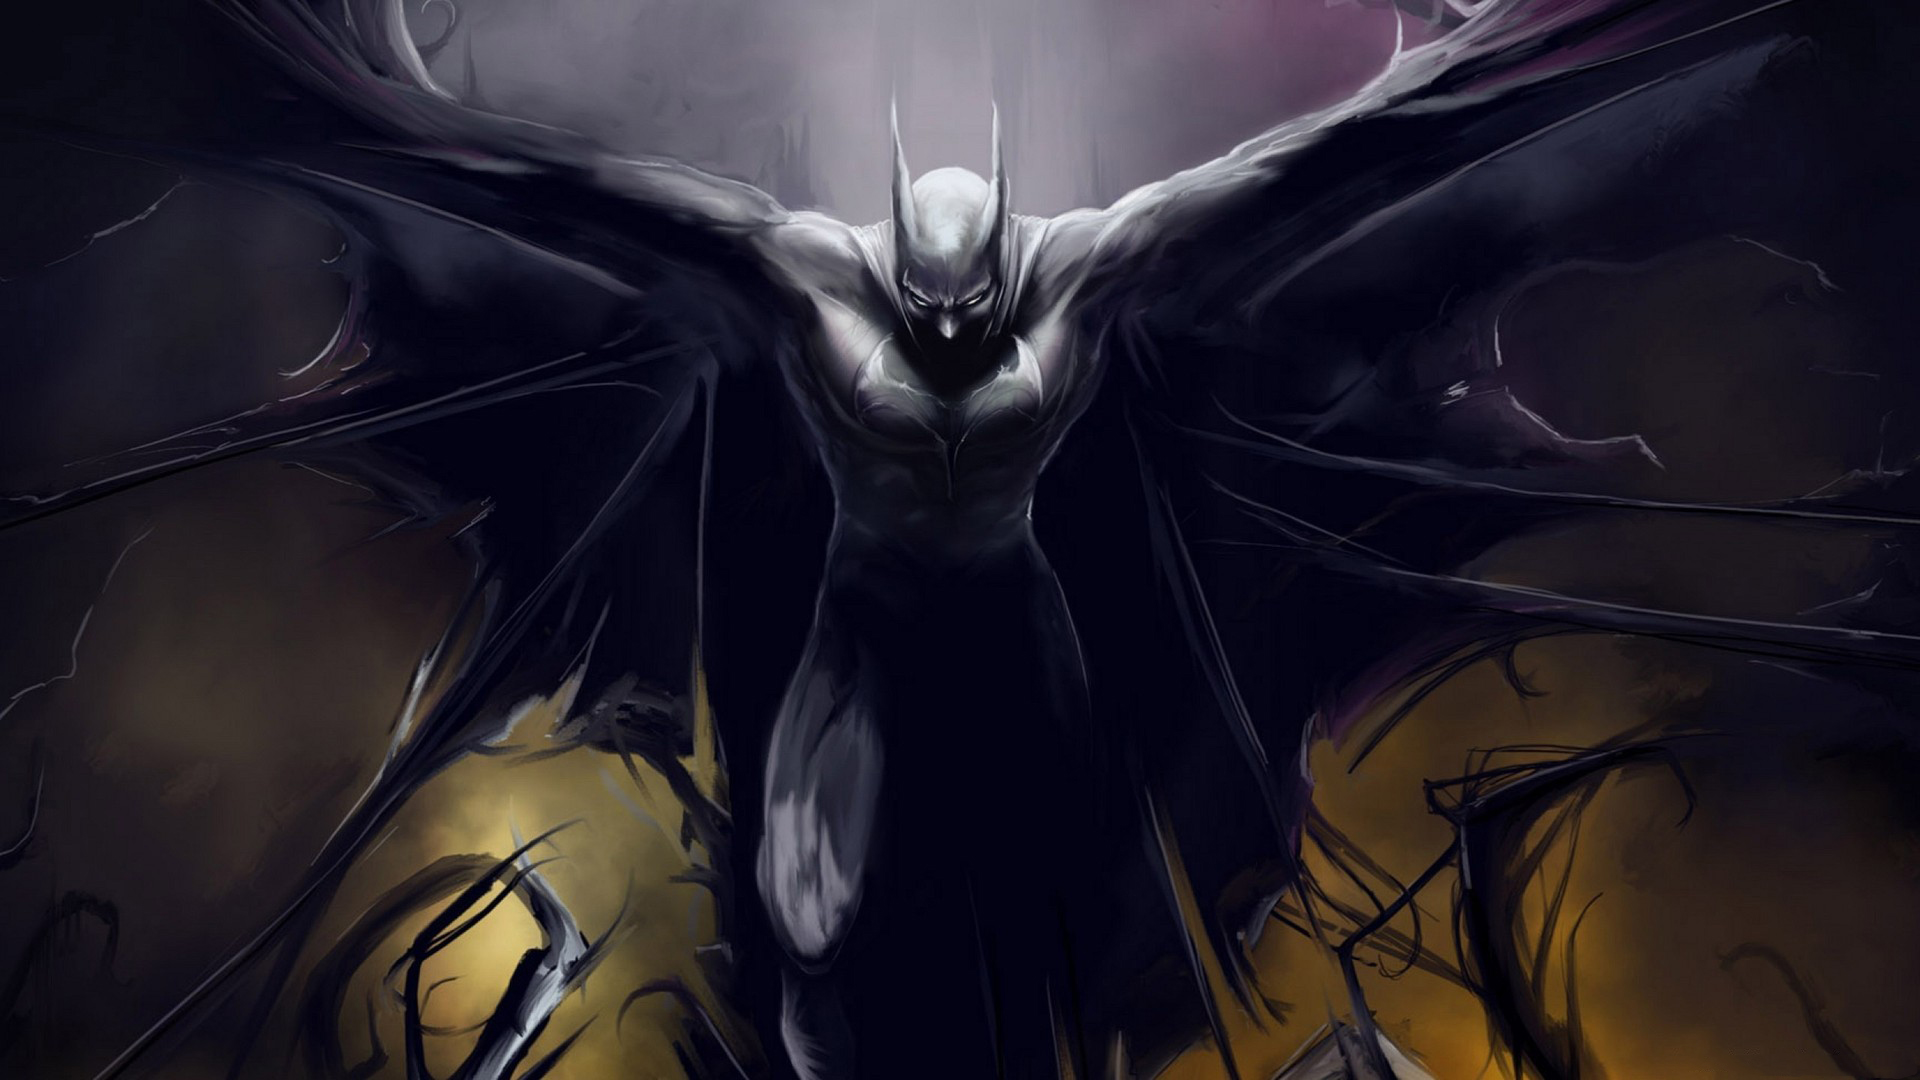 Dark Batman Artwork - Top 10 HD Batman Movie Desktop Wallpapers